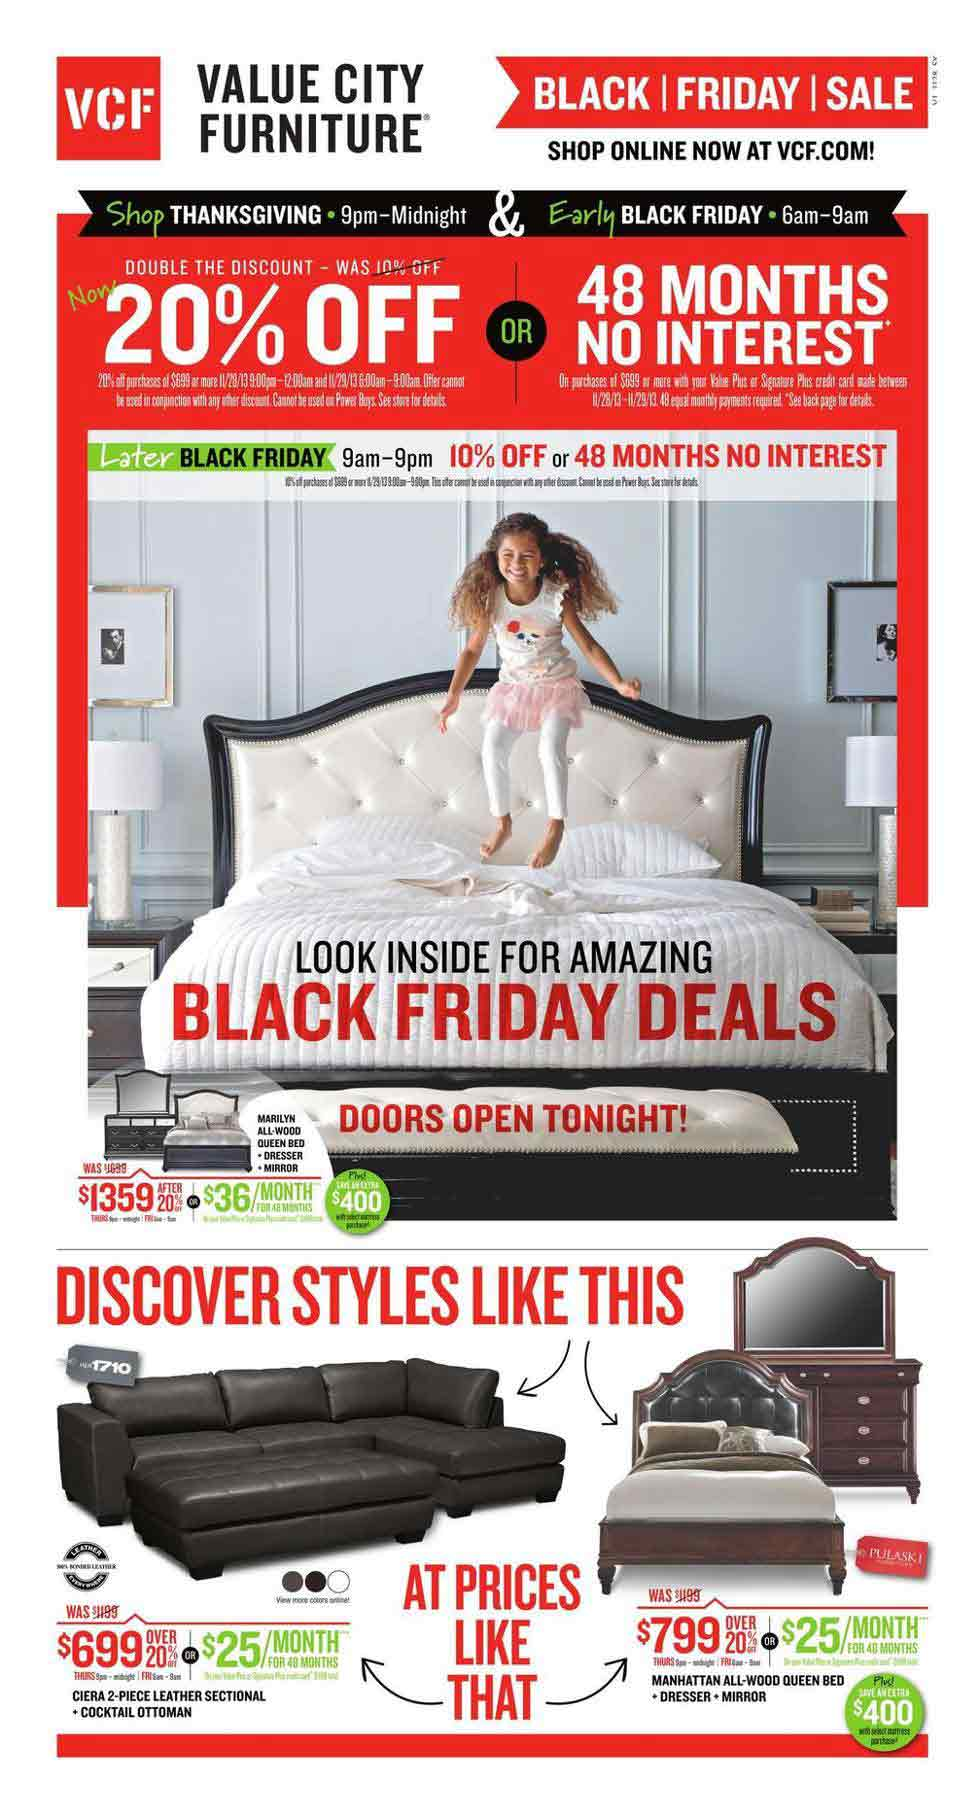 sofa black friday deals sofa black friday deals 12 with thesofa. Black Bedroom Furniture Sets. Home Design Ideas